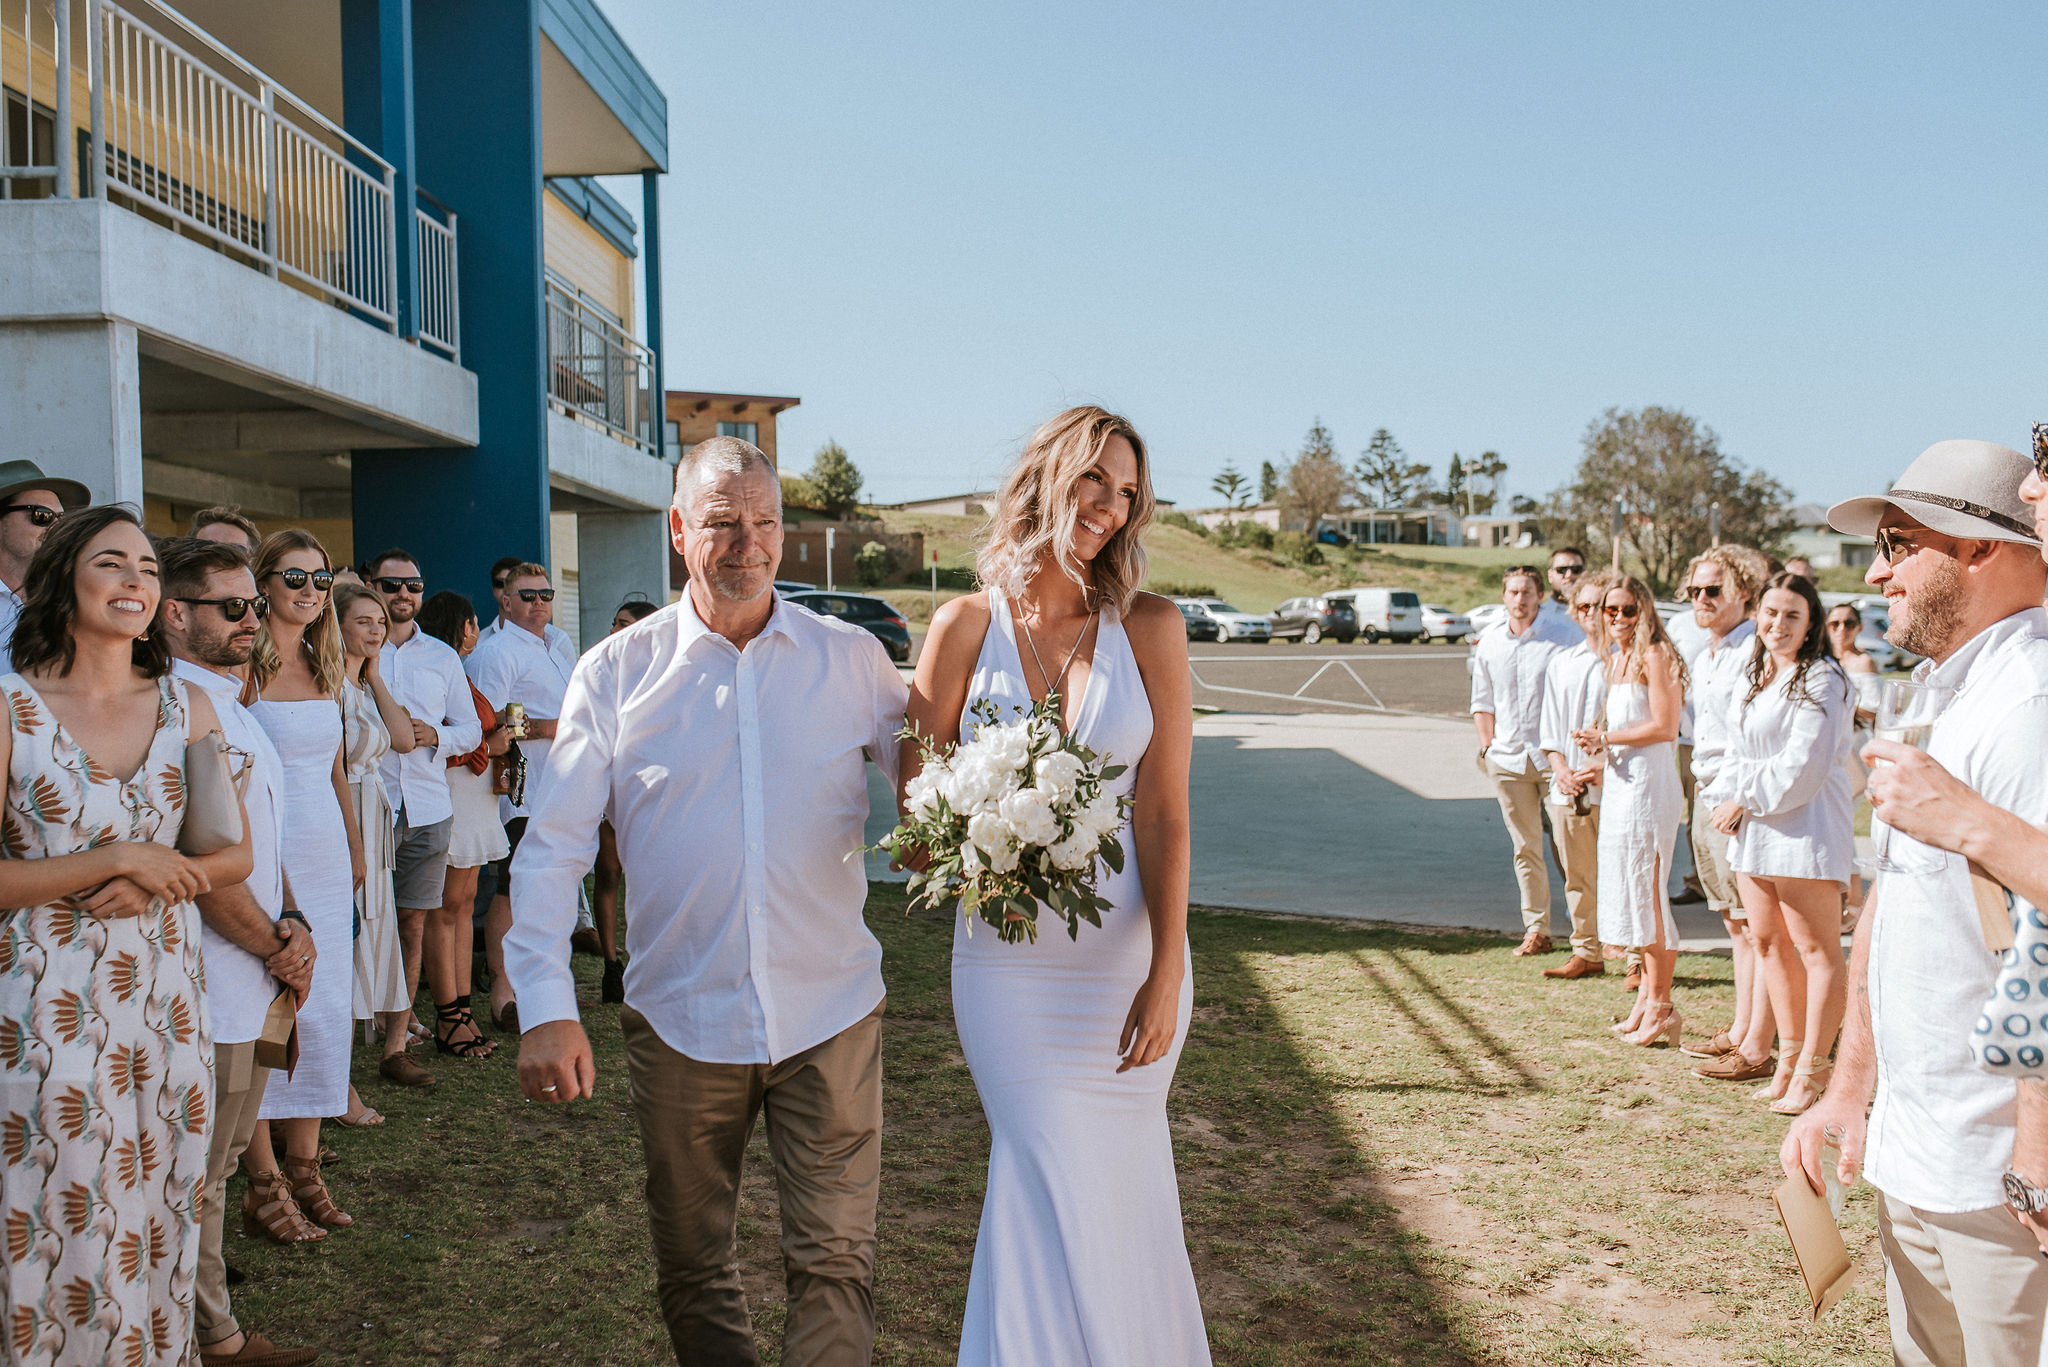 CULBURRA-BEACH-WEDDING-HEFFERNAN-PREVIEW-18.jpg